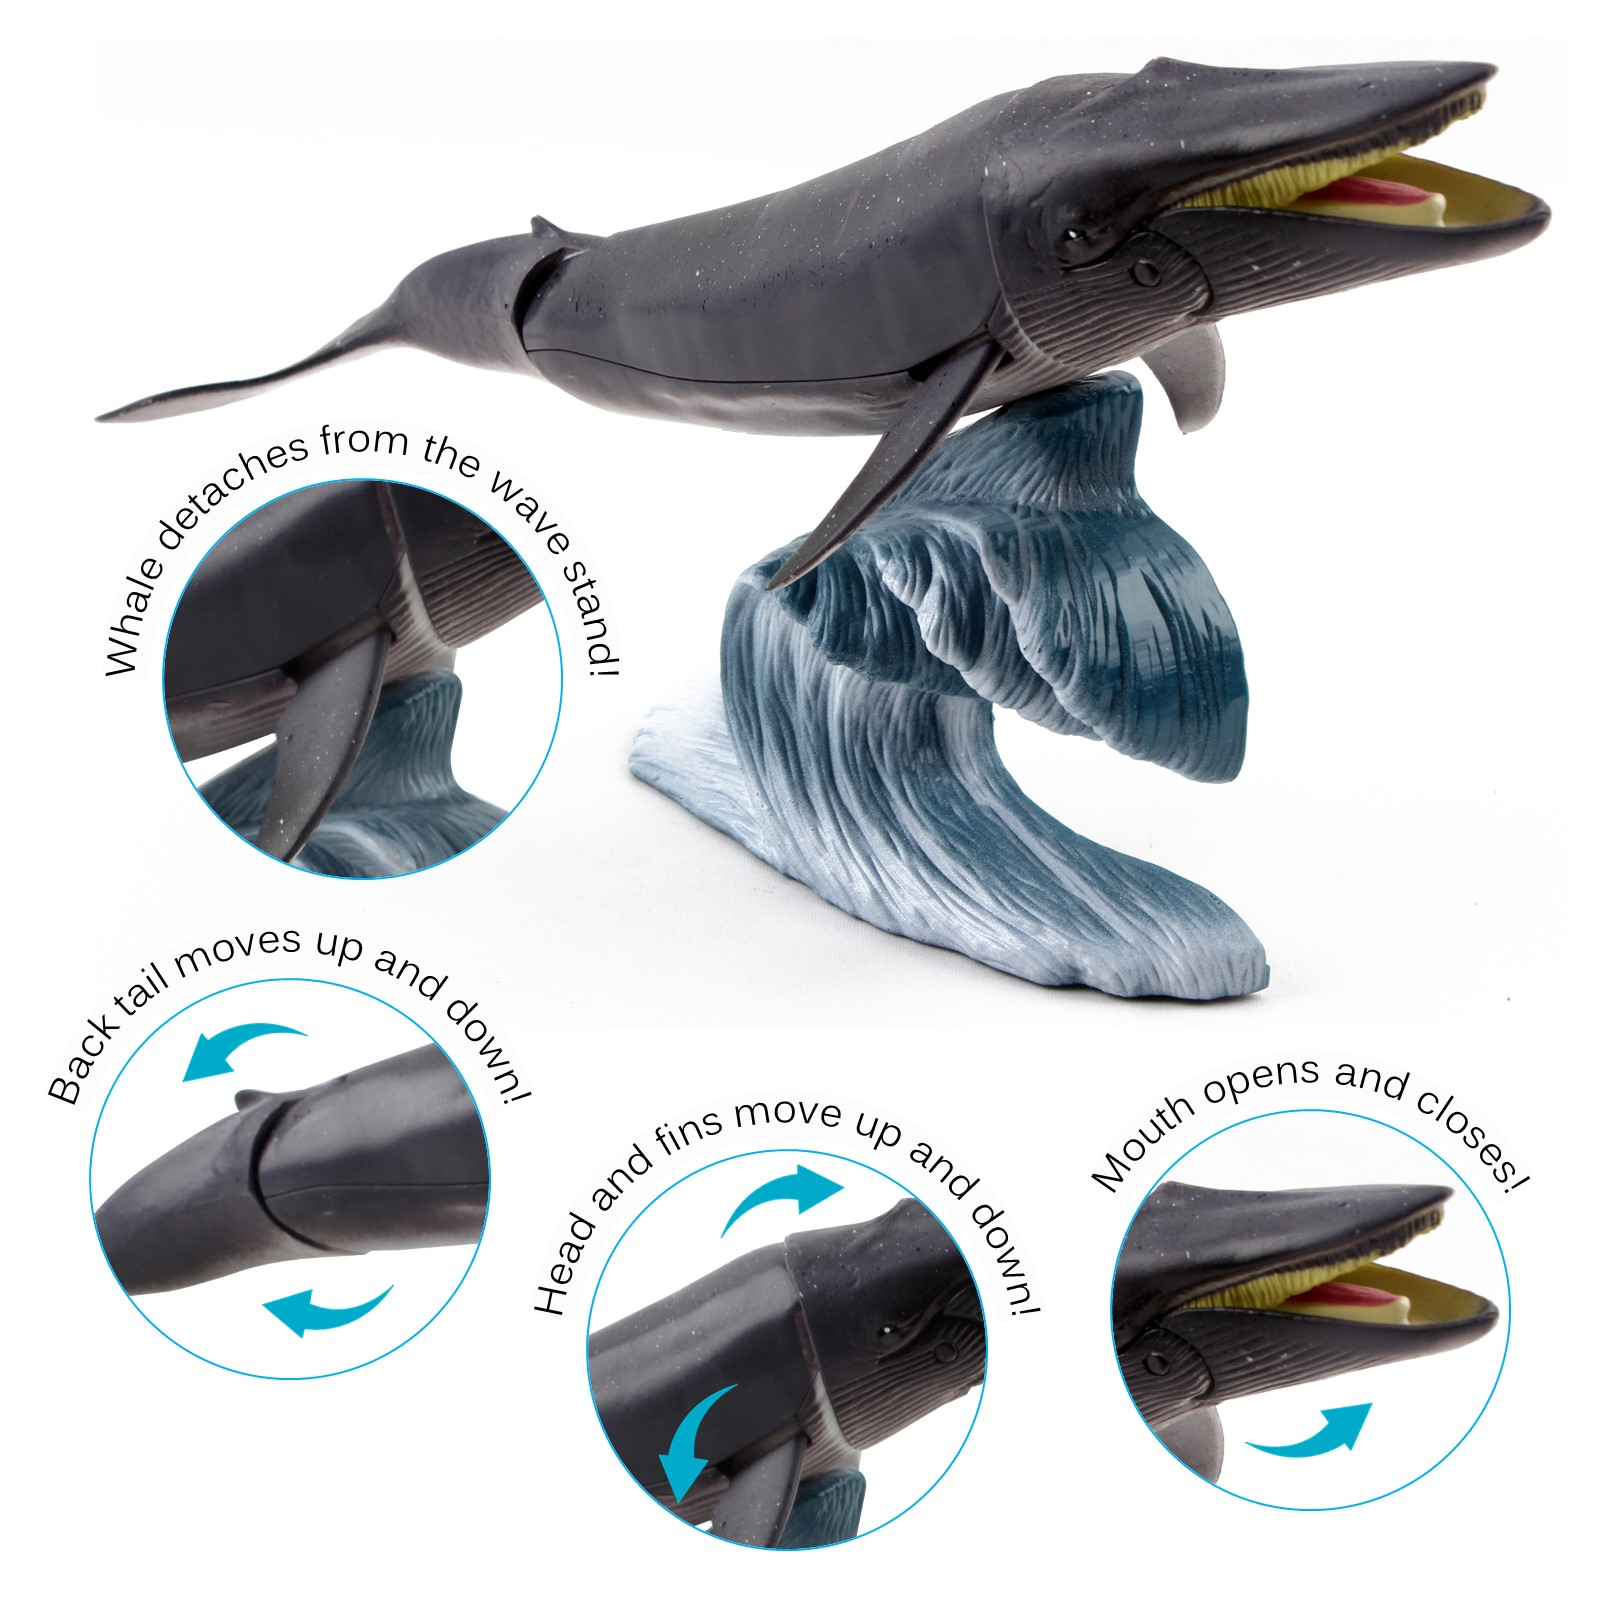 Vokodo Marine Animal Set 6 Piece Includes Humpback Whale 2 Sharks 2 Ocean Fish And Wave Stand Aquatic Life Figurine Species Sea Creatures Kids Play Toys Great Gift For Children Girls Boys Toddlers